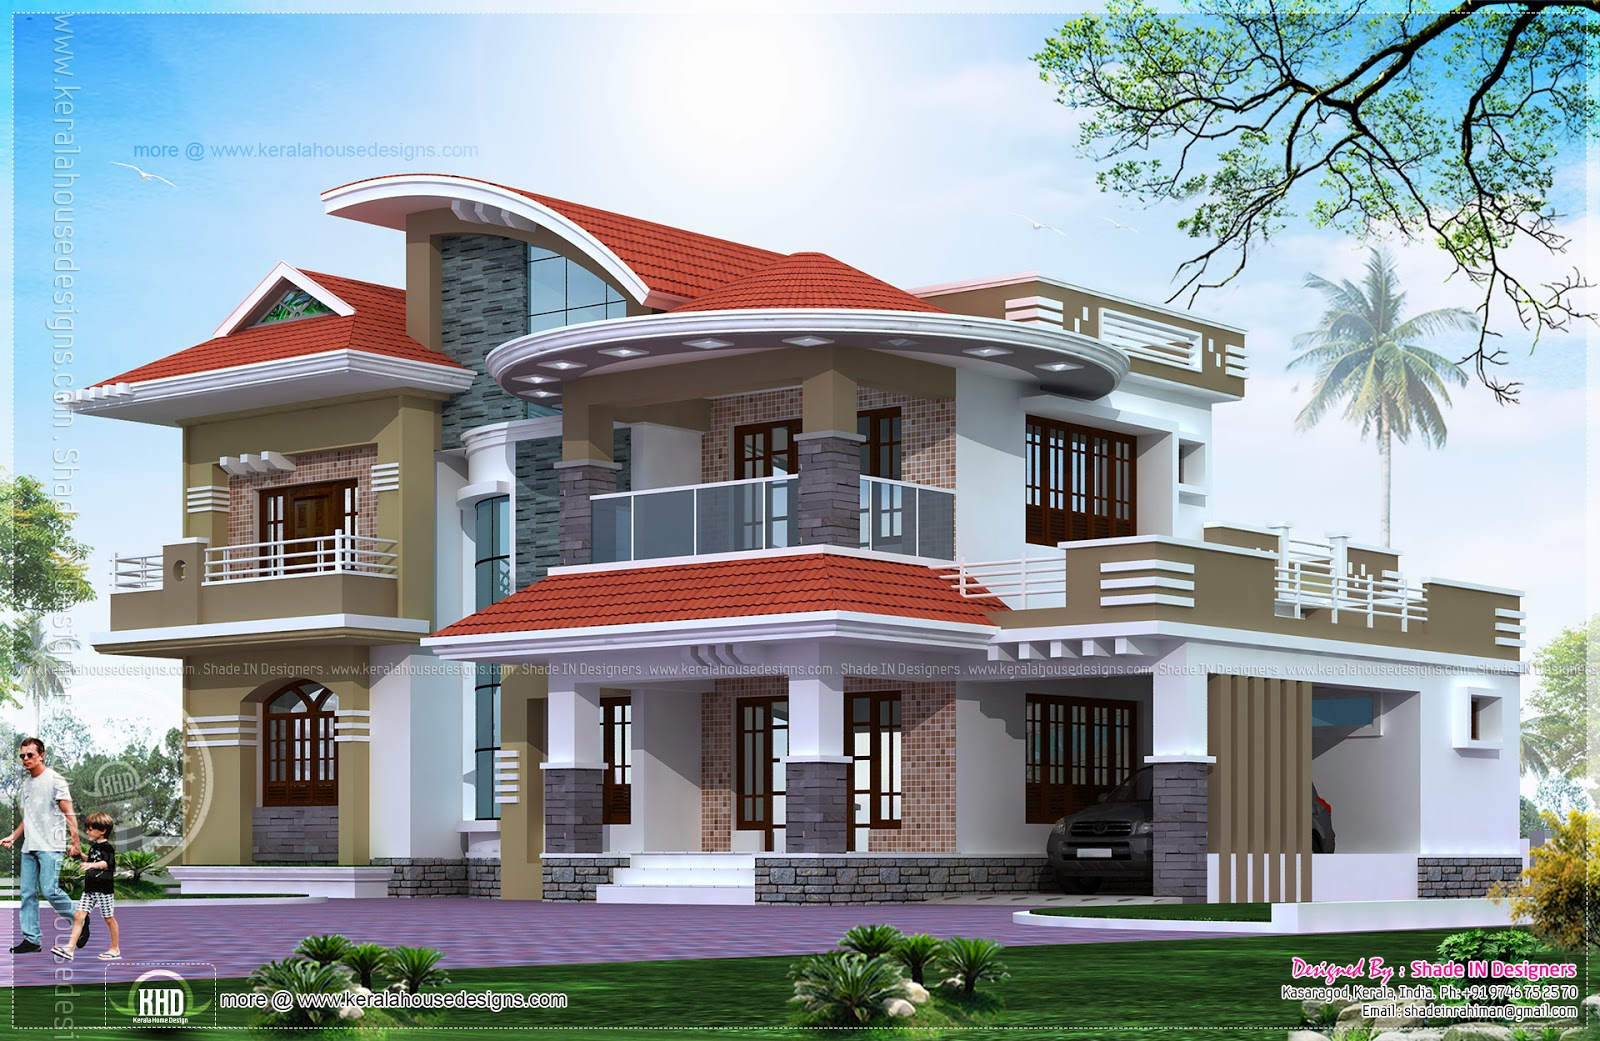 5 bedroom luxury house in kasaragod kerala home design for Kerala house photos